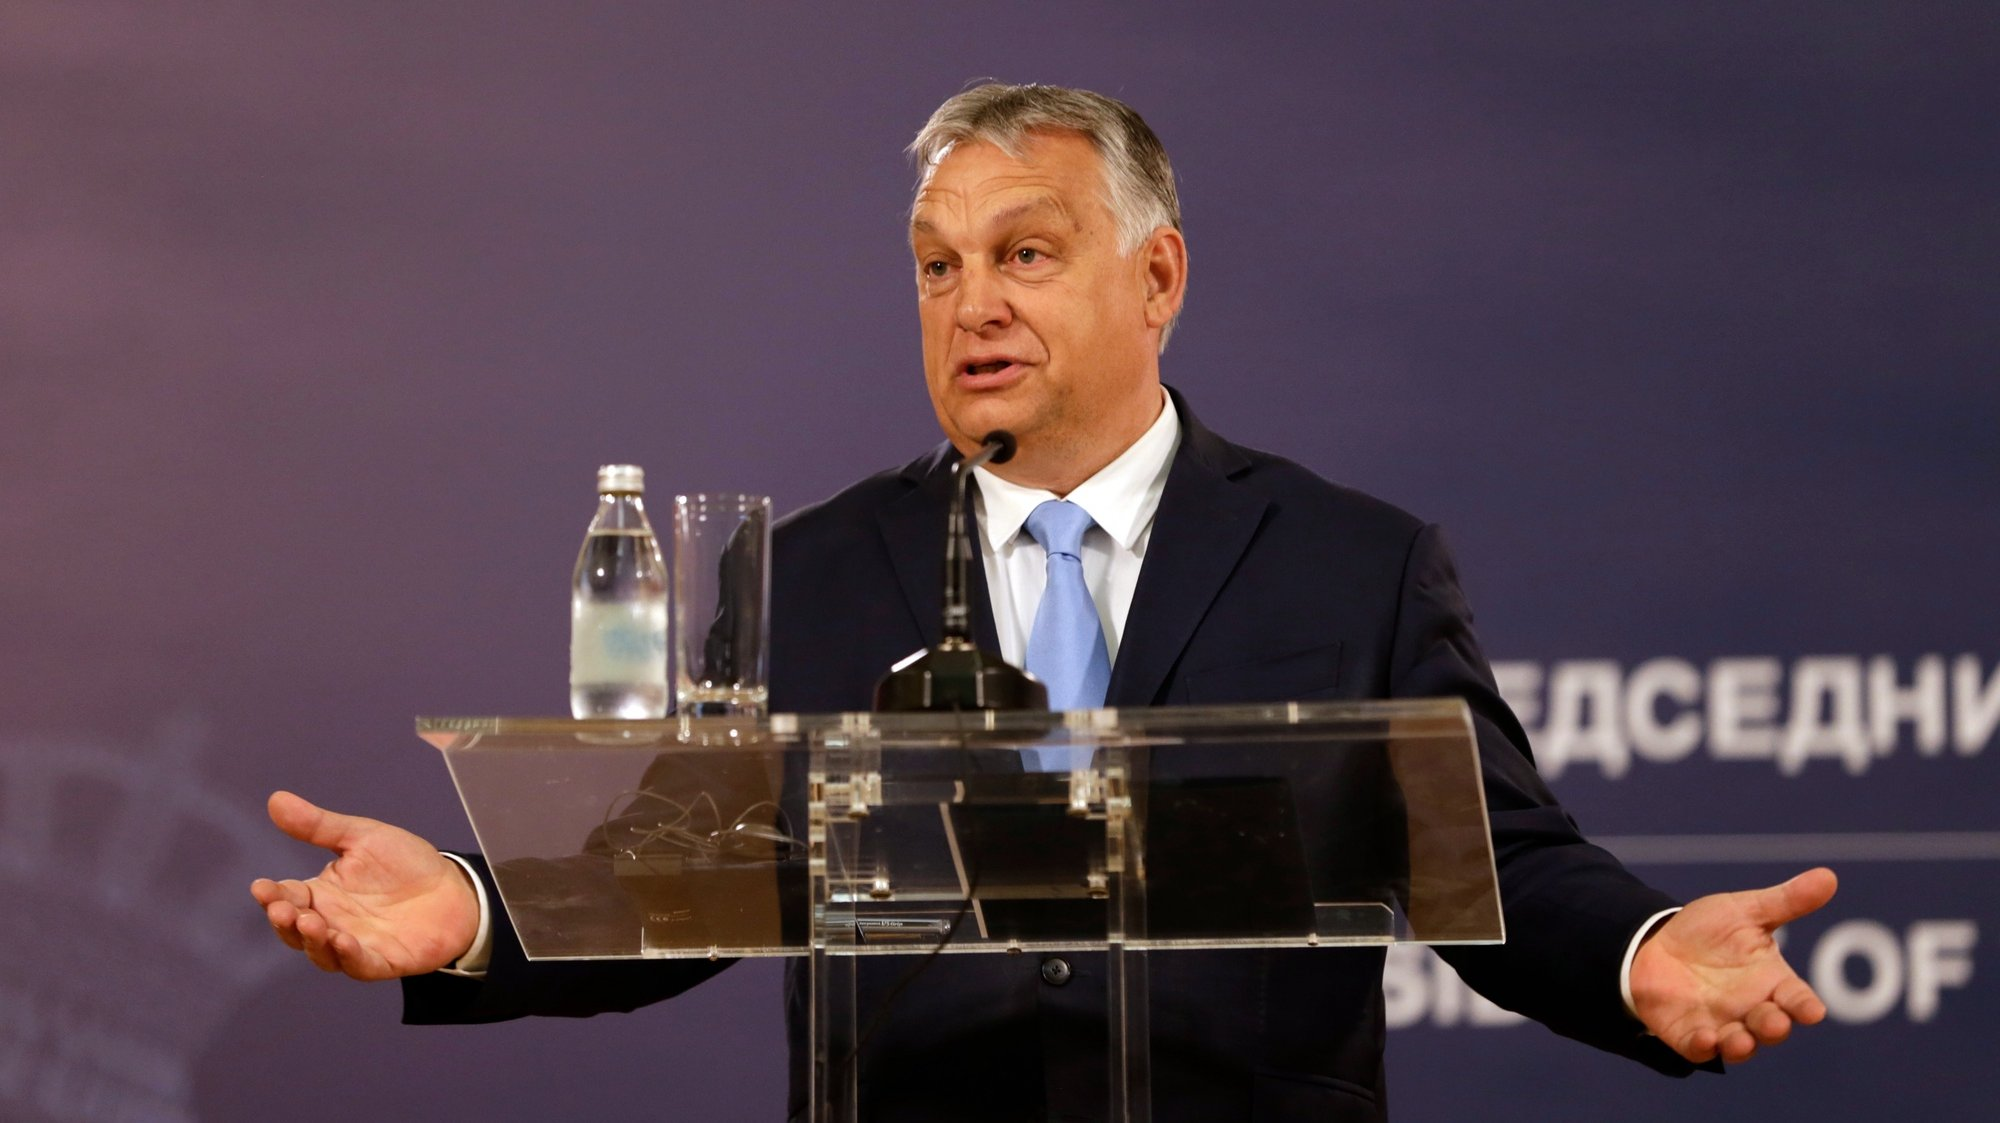 epa09331056 Hungarian Prime Minister Viktor Orban talks during a press conference after a meeting with Serbian President Vucic in Belgrade, Serbia, 08 July 2021. Orban is on an official visit to Serbia.  EPA/ANDREJ CUKIC